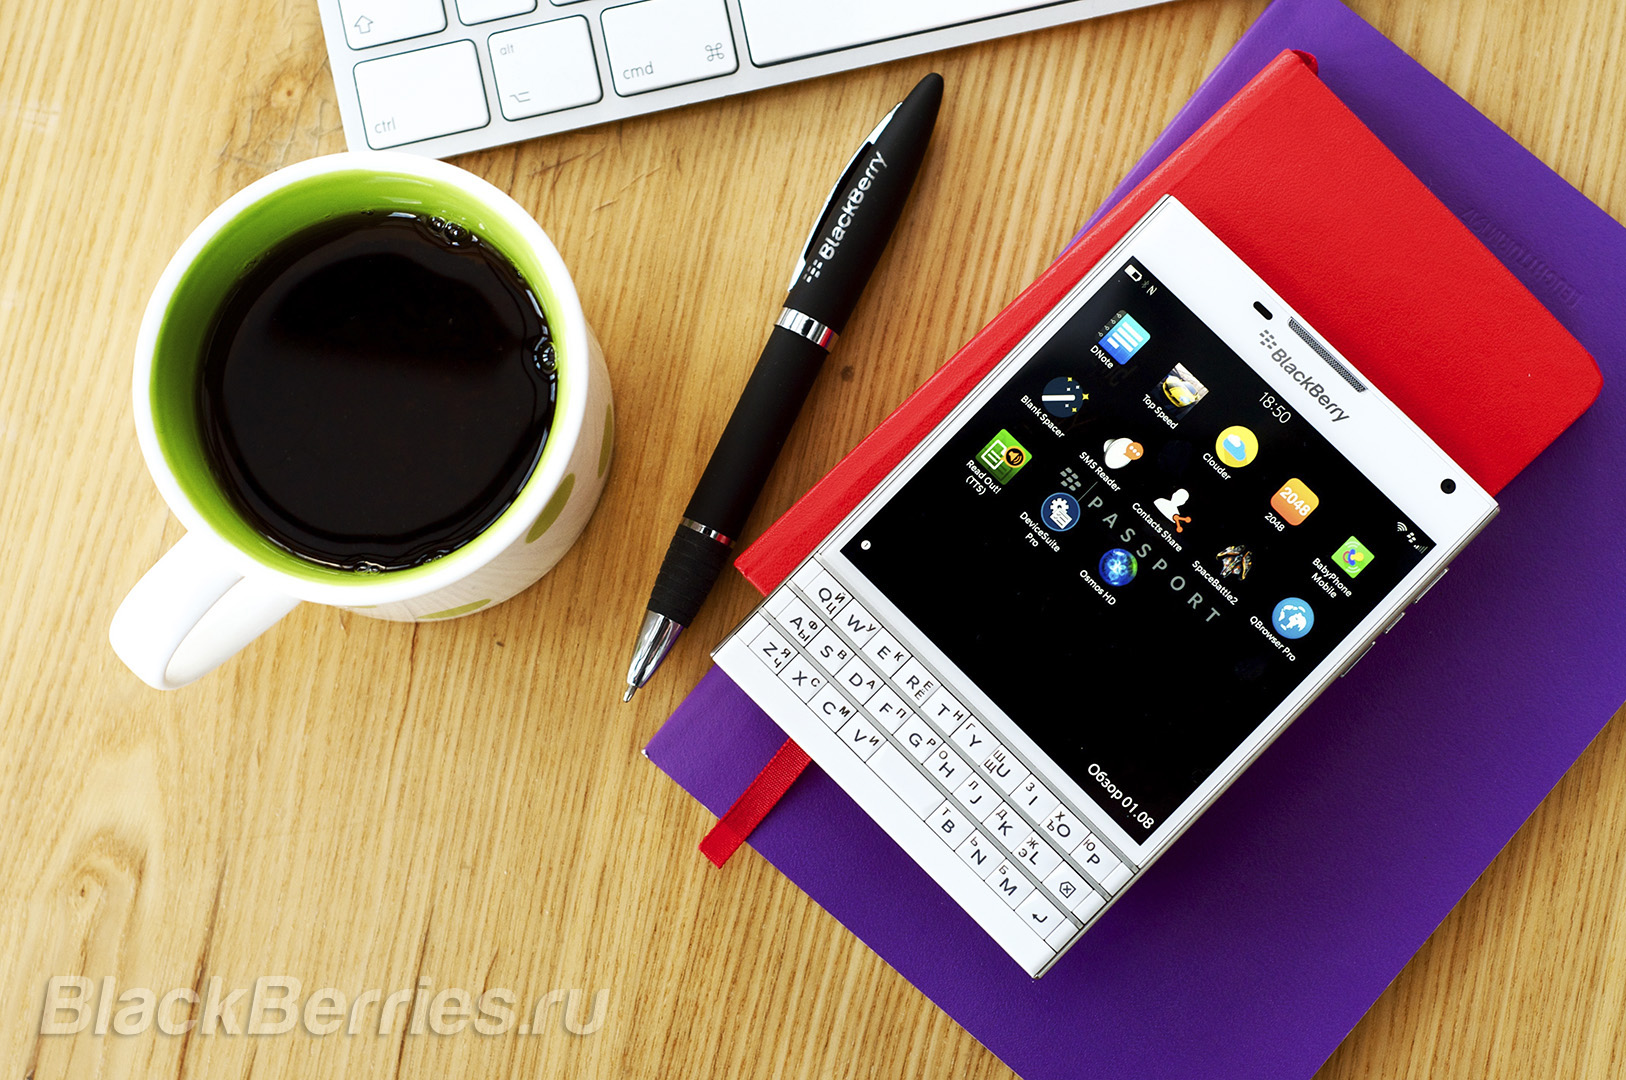 BlackBerry-Passport-Apps-01-08-15